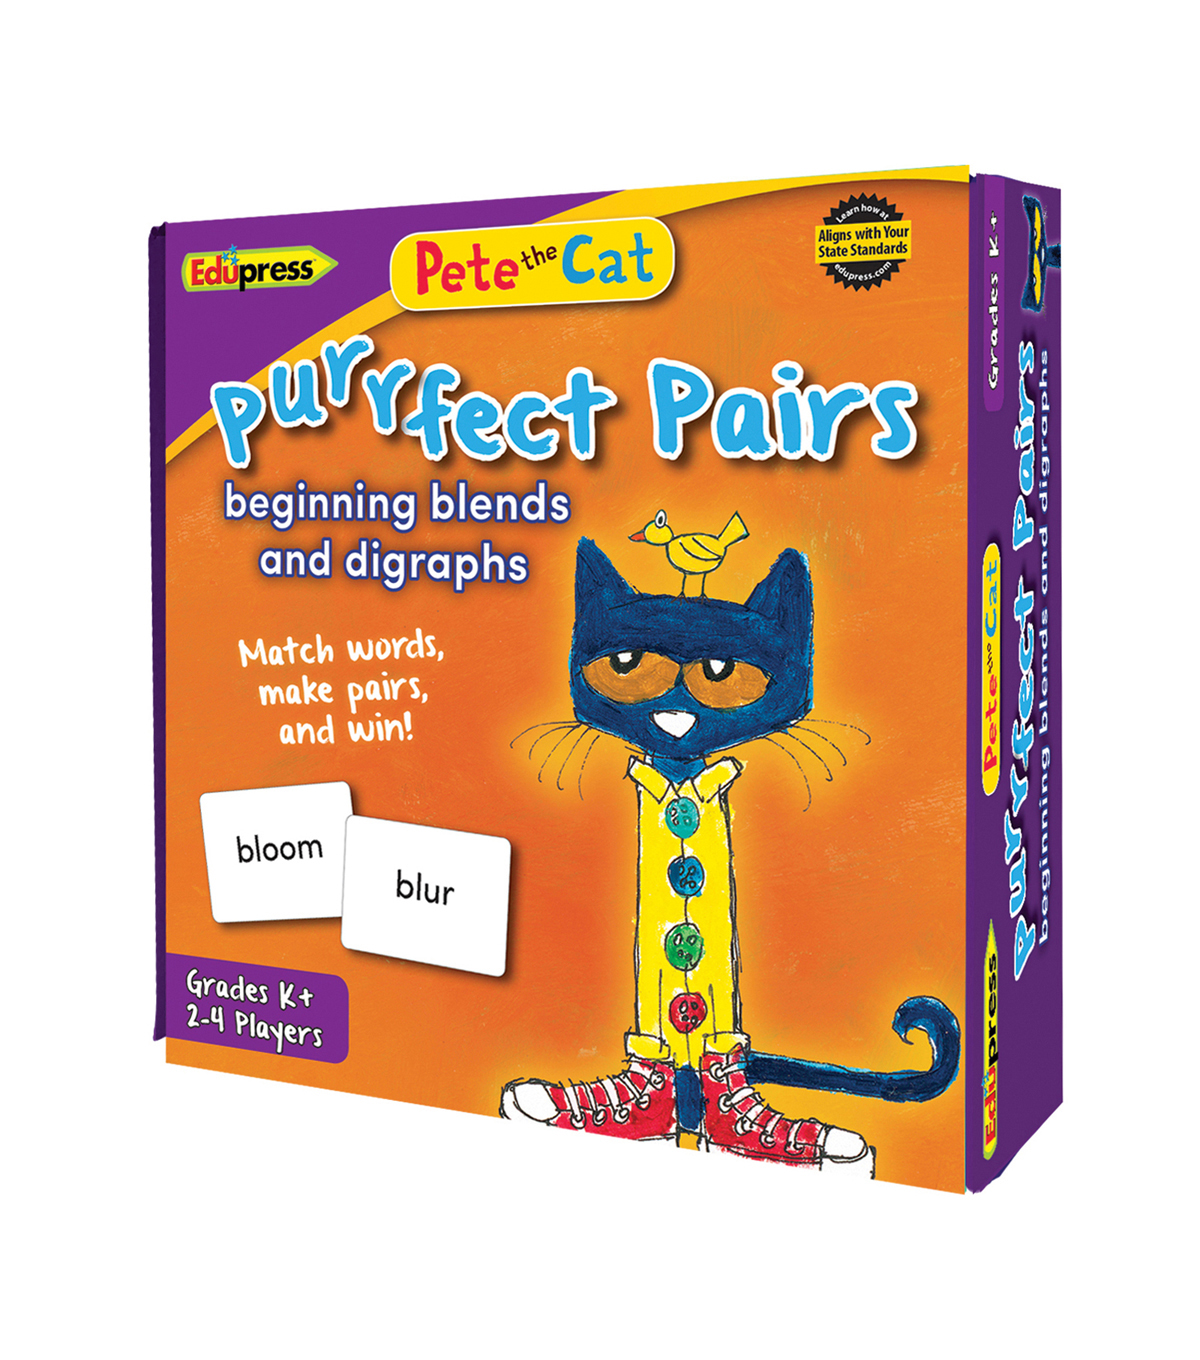 Pete the Cat Purrfect Pairs Game: Beginning Blends & Digraghs, Pack of 2